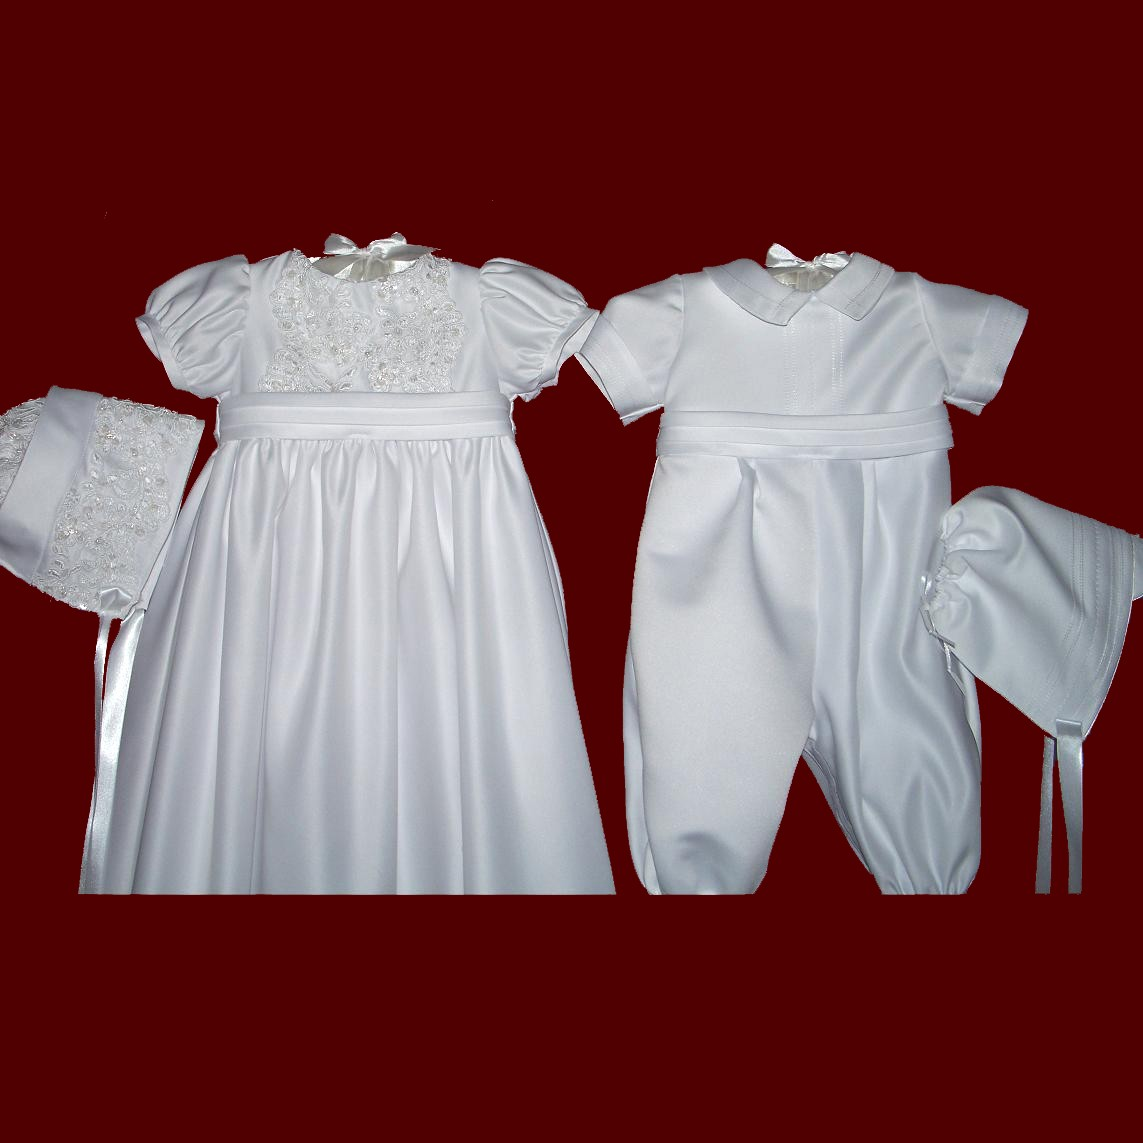 Christening Gowns From Wedding Dresses